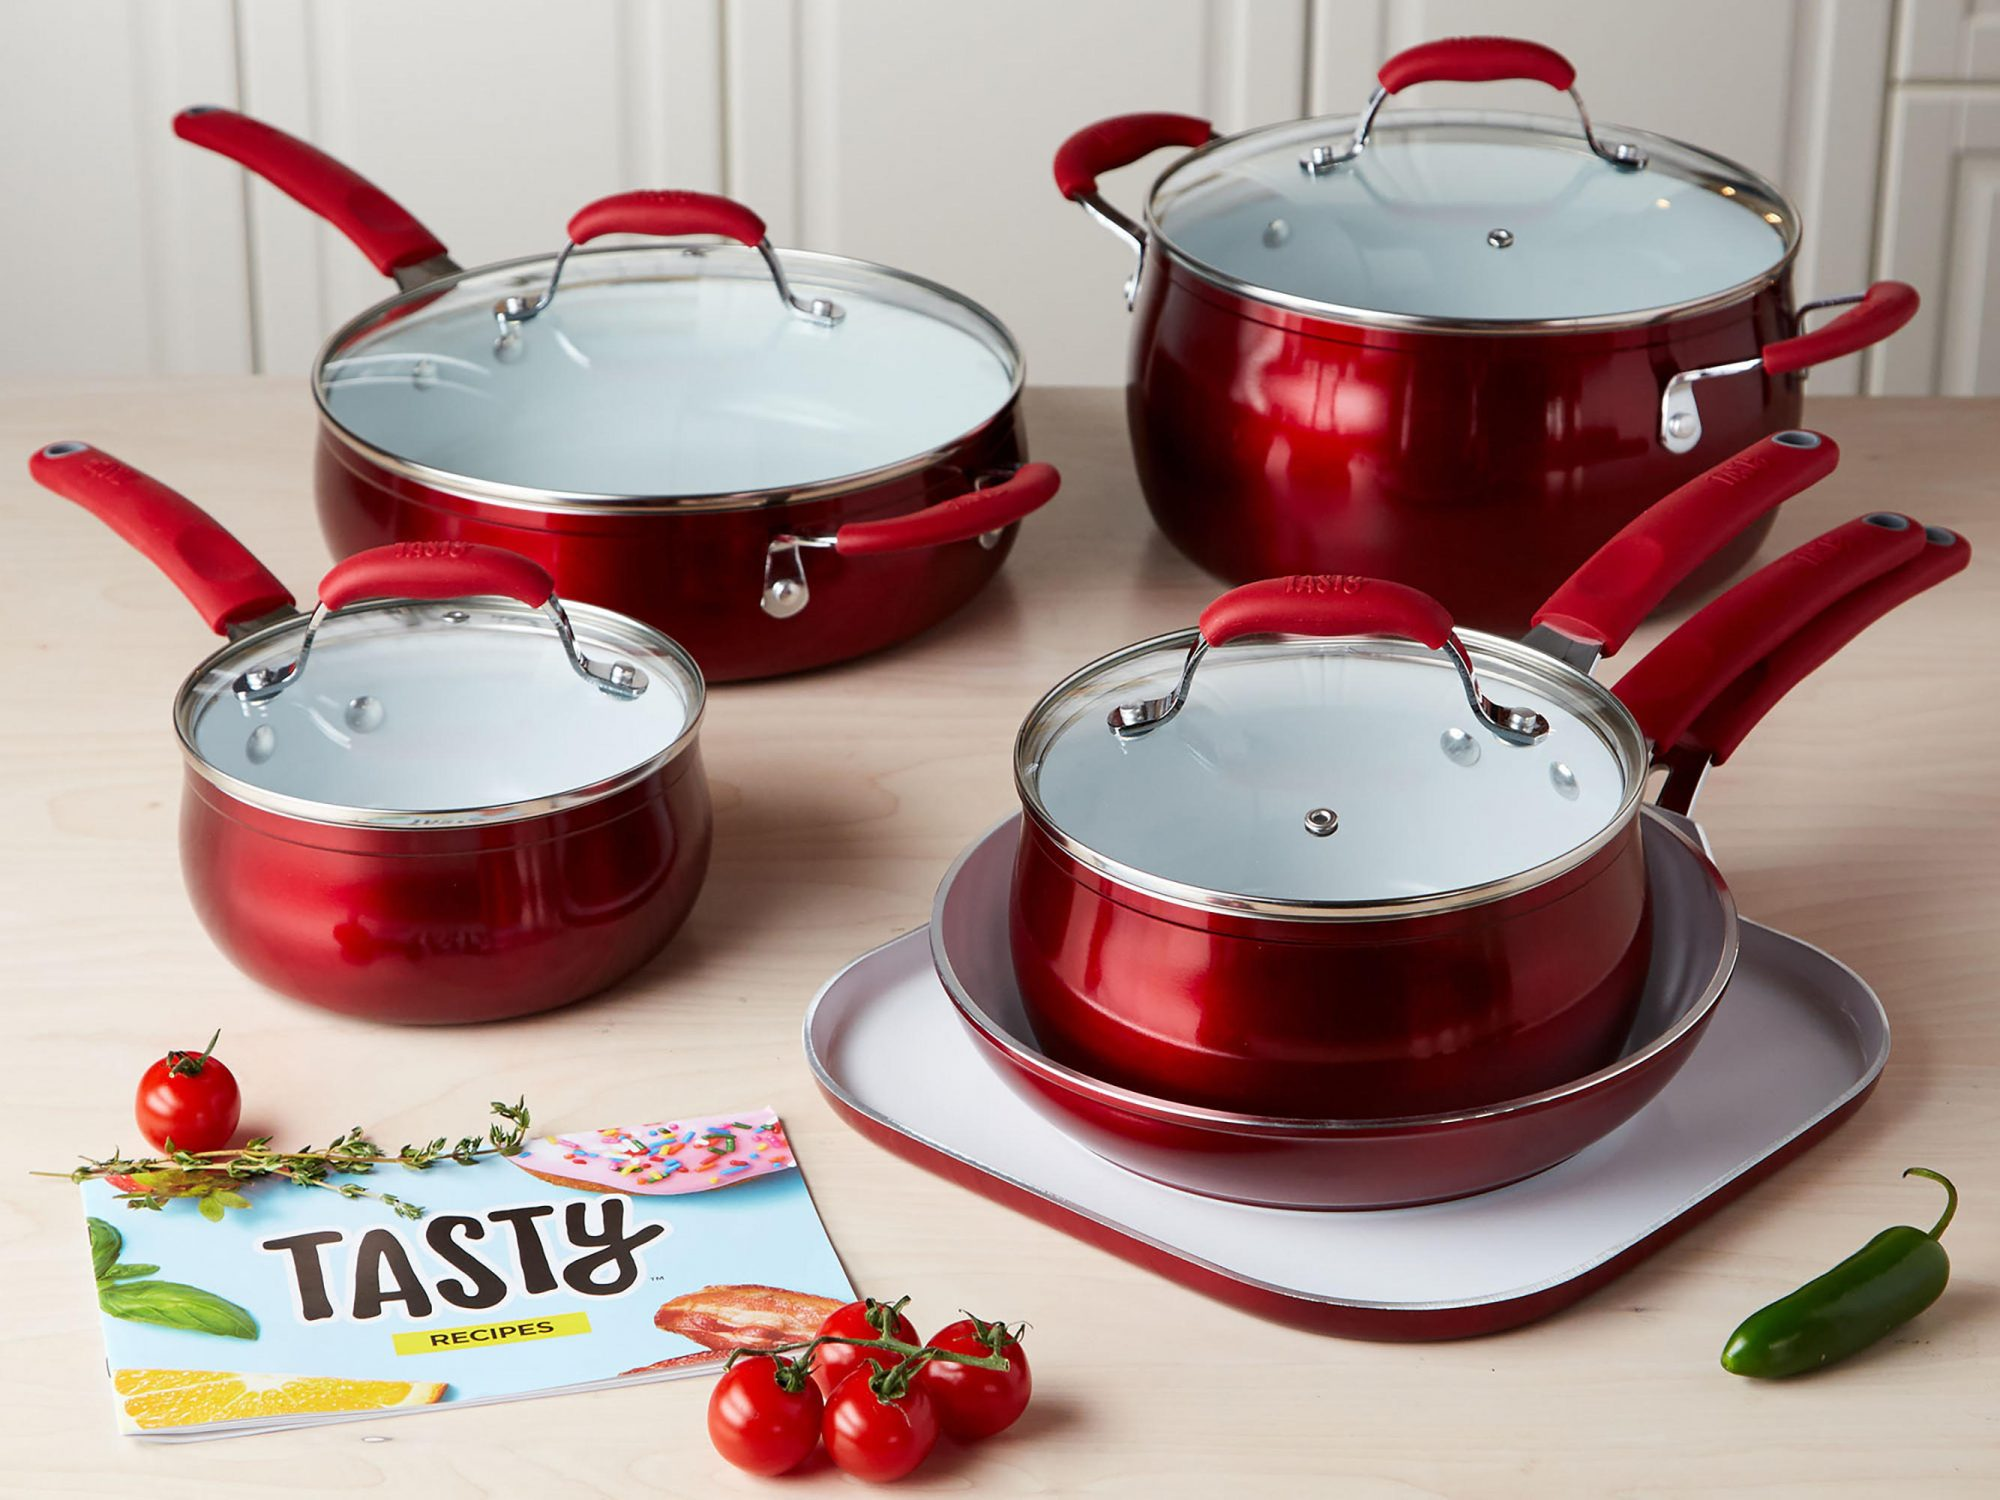 tasty cookware